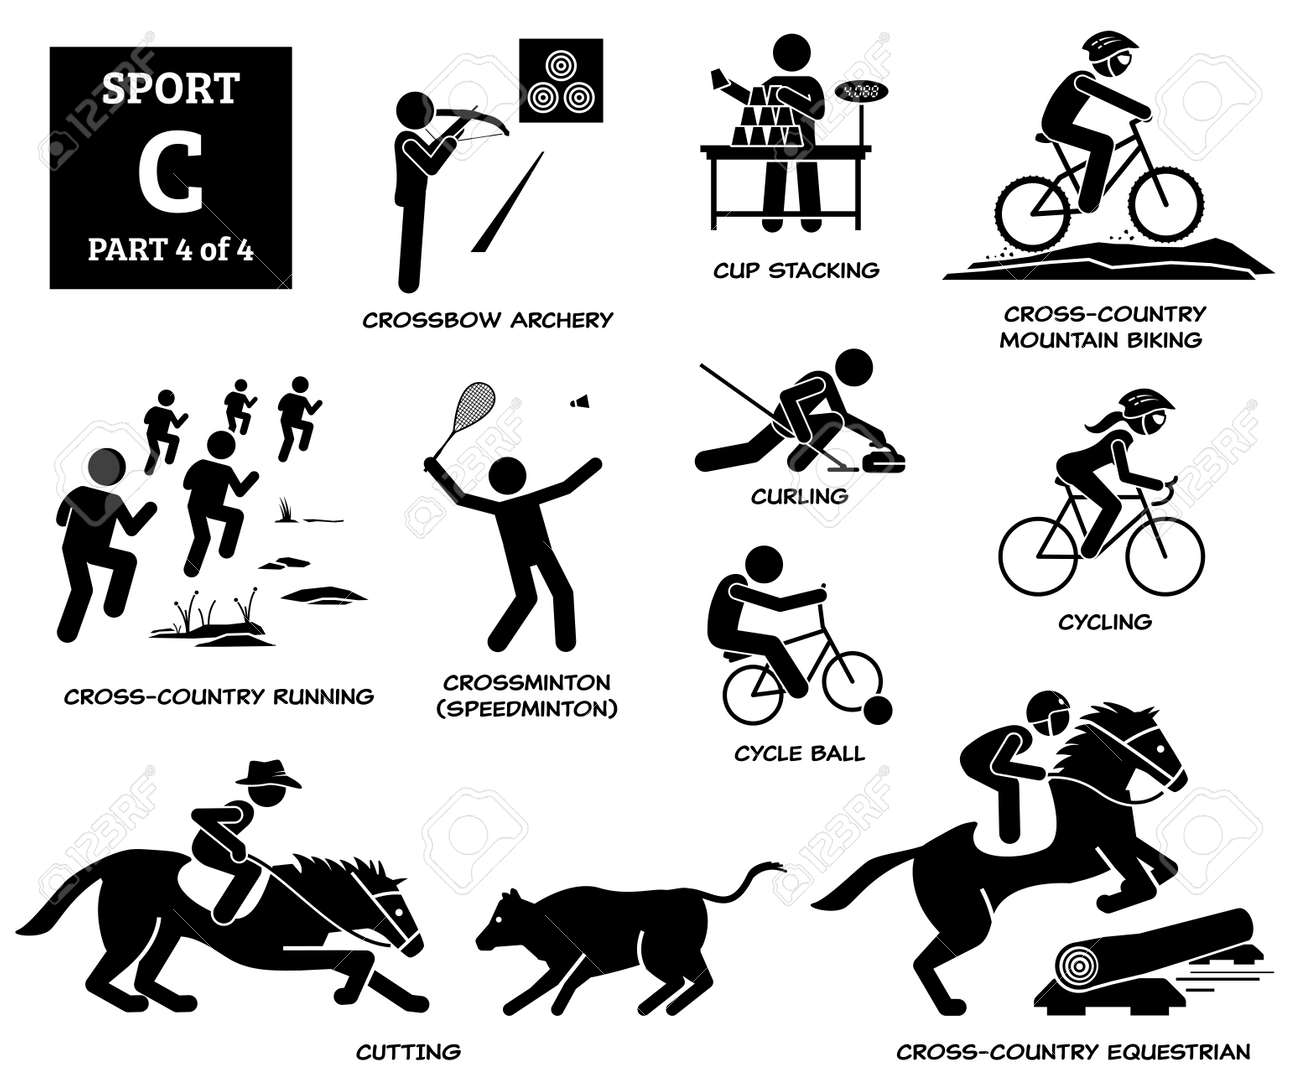 Sport games alphabet C vector icons pictogram. Crossbow archery, cup stacking, cross country mountain biking, running, crossminton speedminton, cycle ball, curling, cycling, cutting, and equestrian. - 171765679